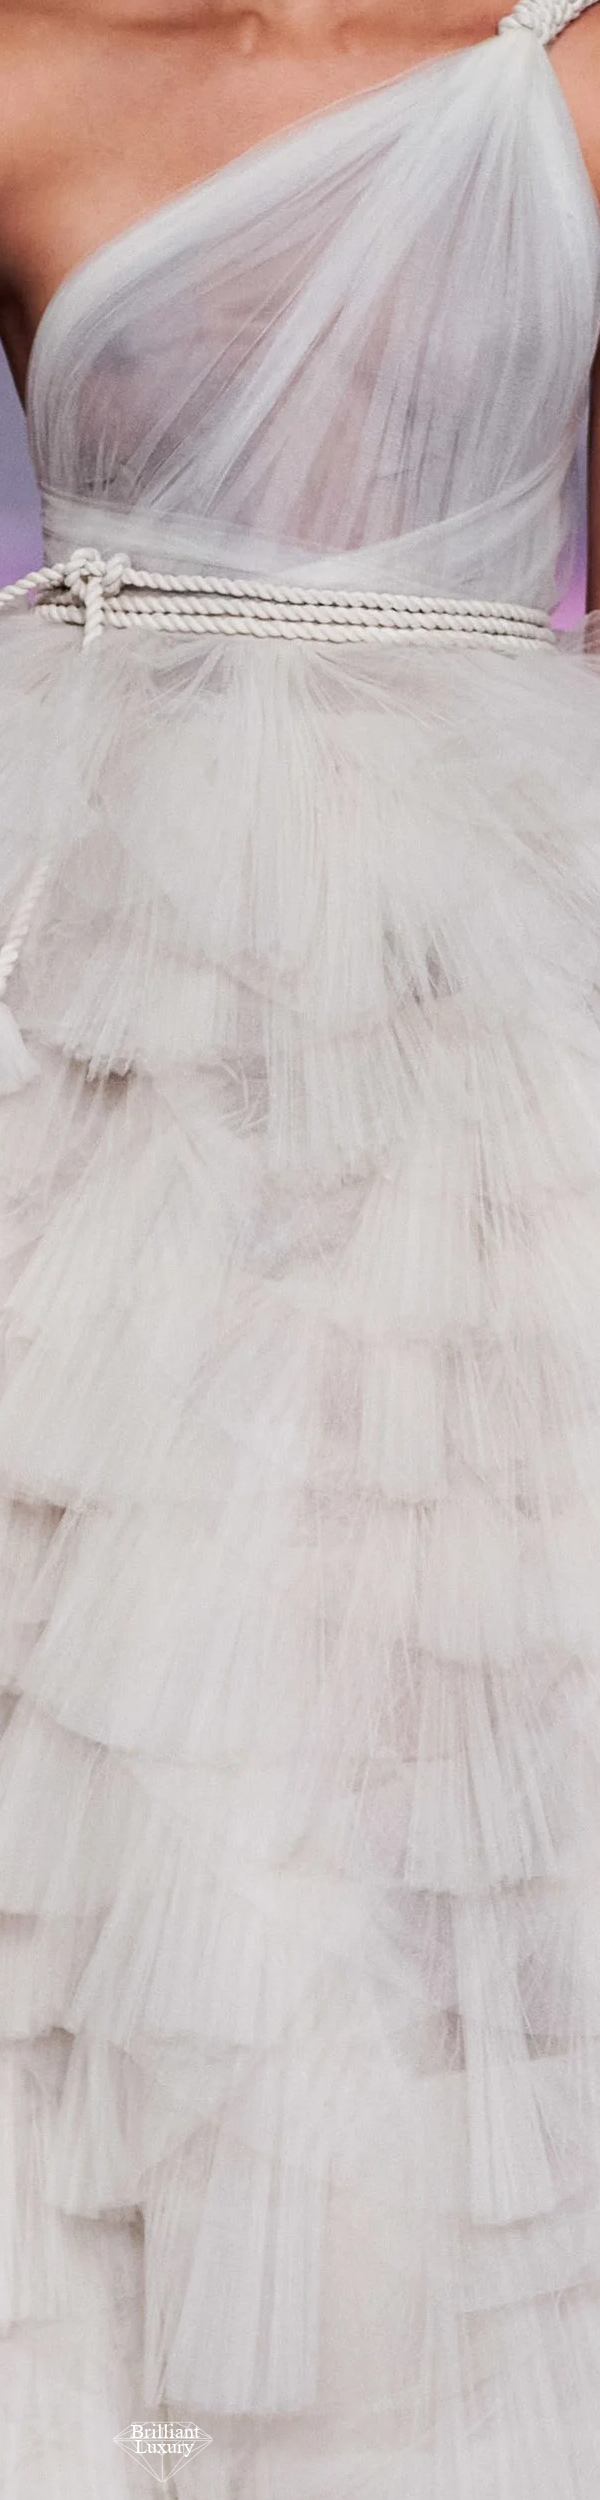 Dior White Tulle Couture Gown Spring 2020 #fashion